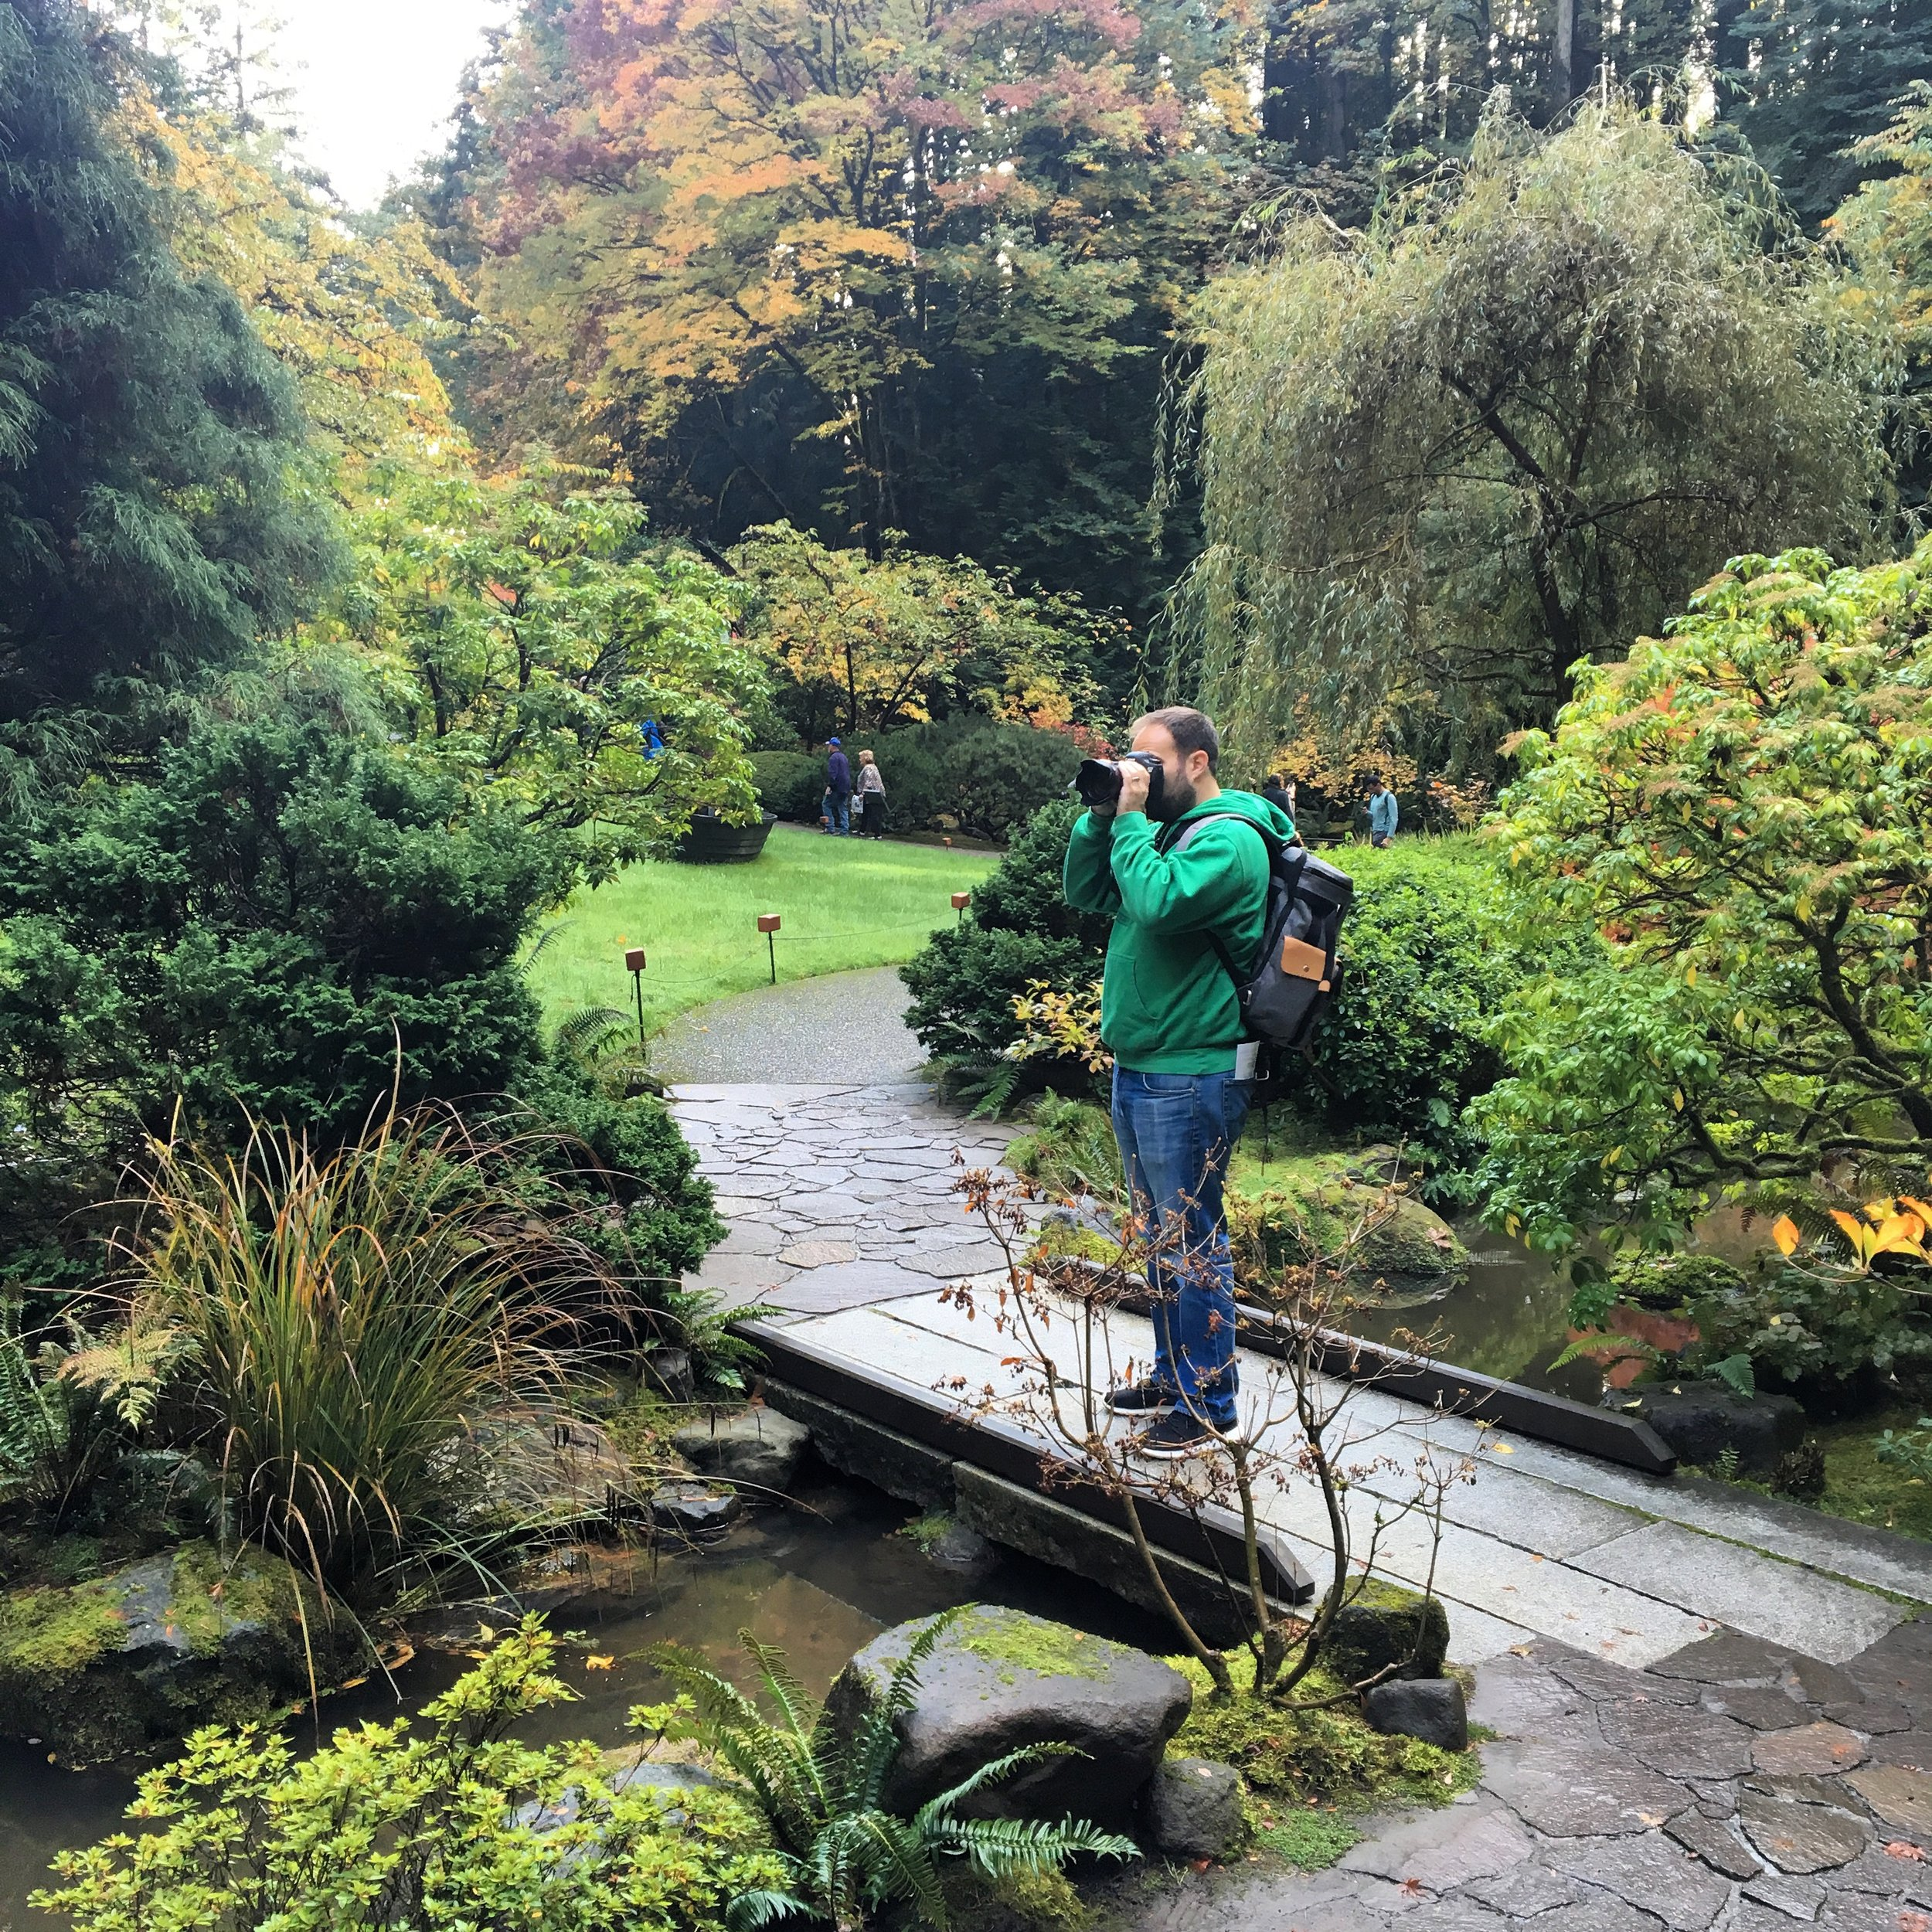 With clear skies in the forecast, we made our way to the  Japanese Garden . With the foliage, the garden was magnificent. For a moment, we felt like we were back in Kyoto. The garden was a short drive outside of the city center.